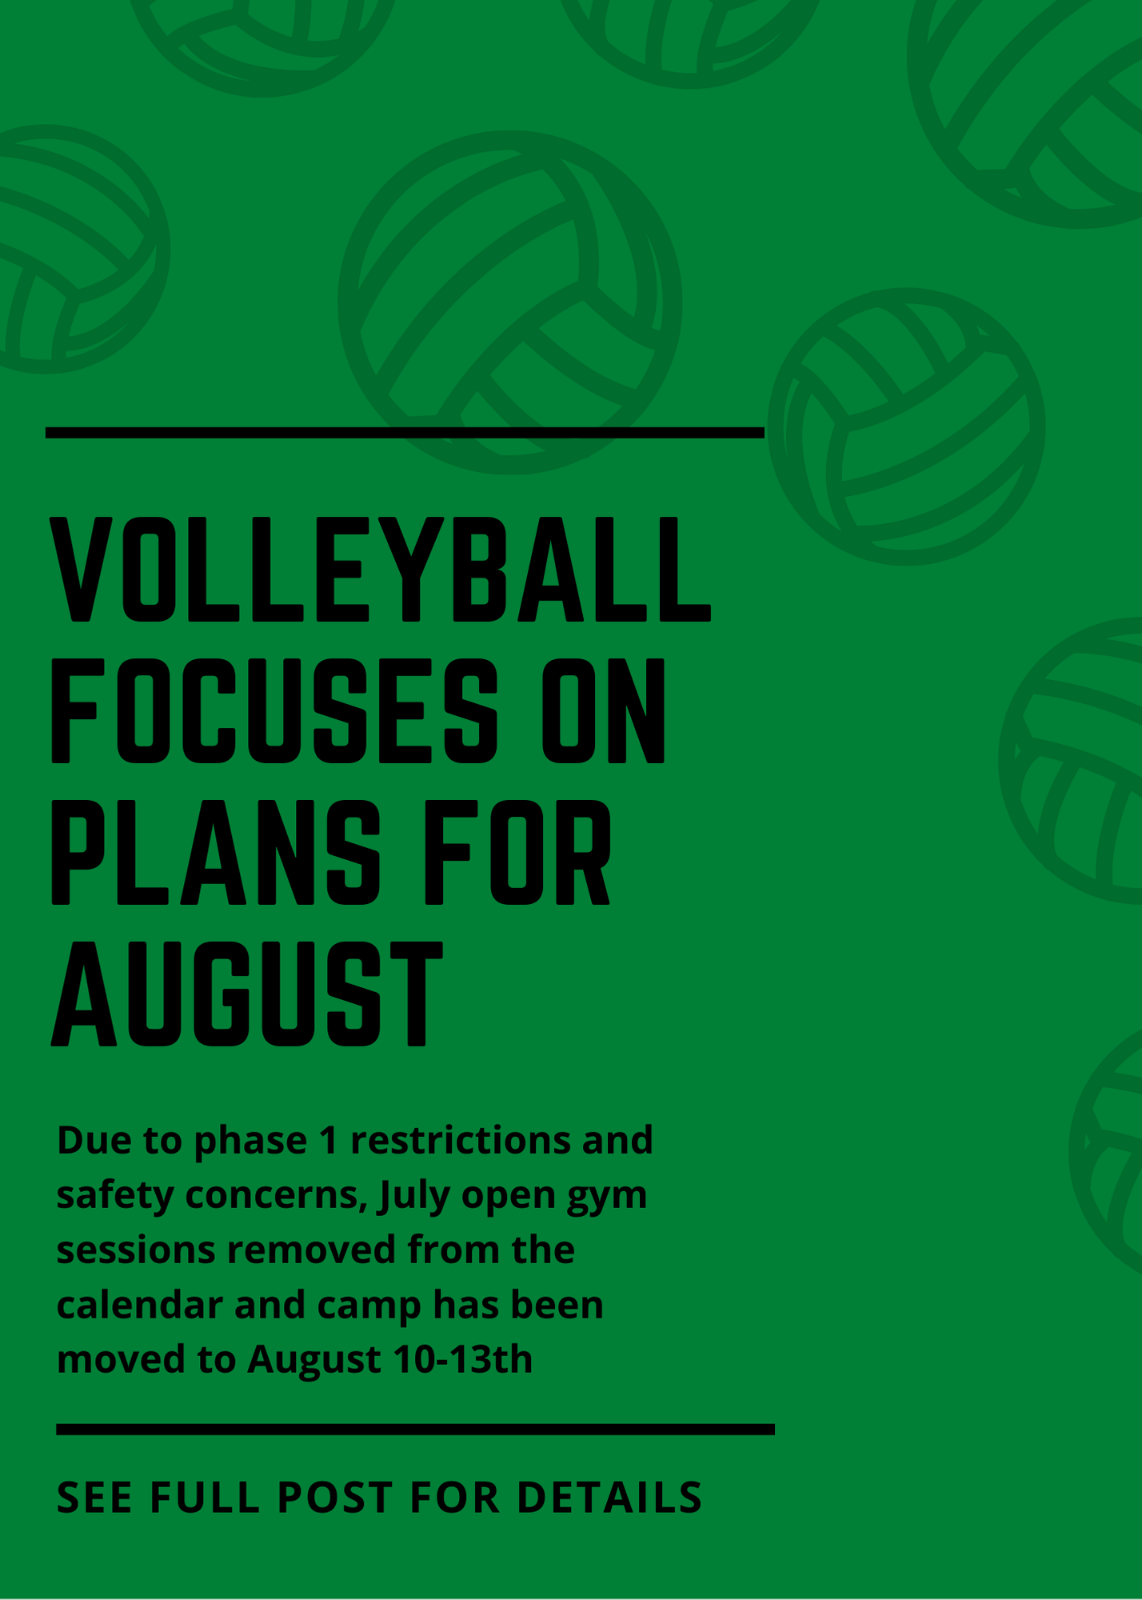 Tigard Volleyball focuses on plans for August